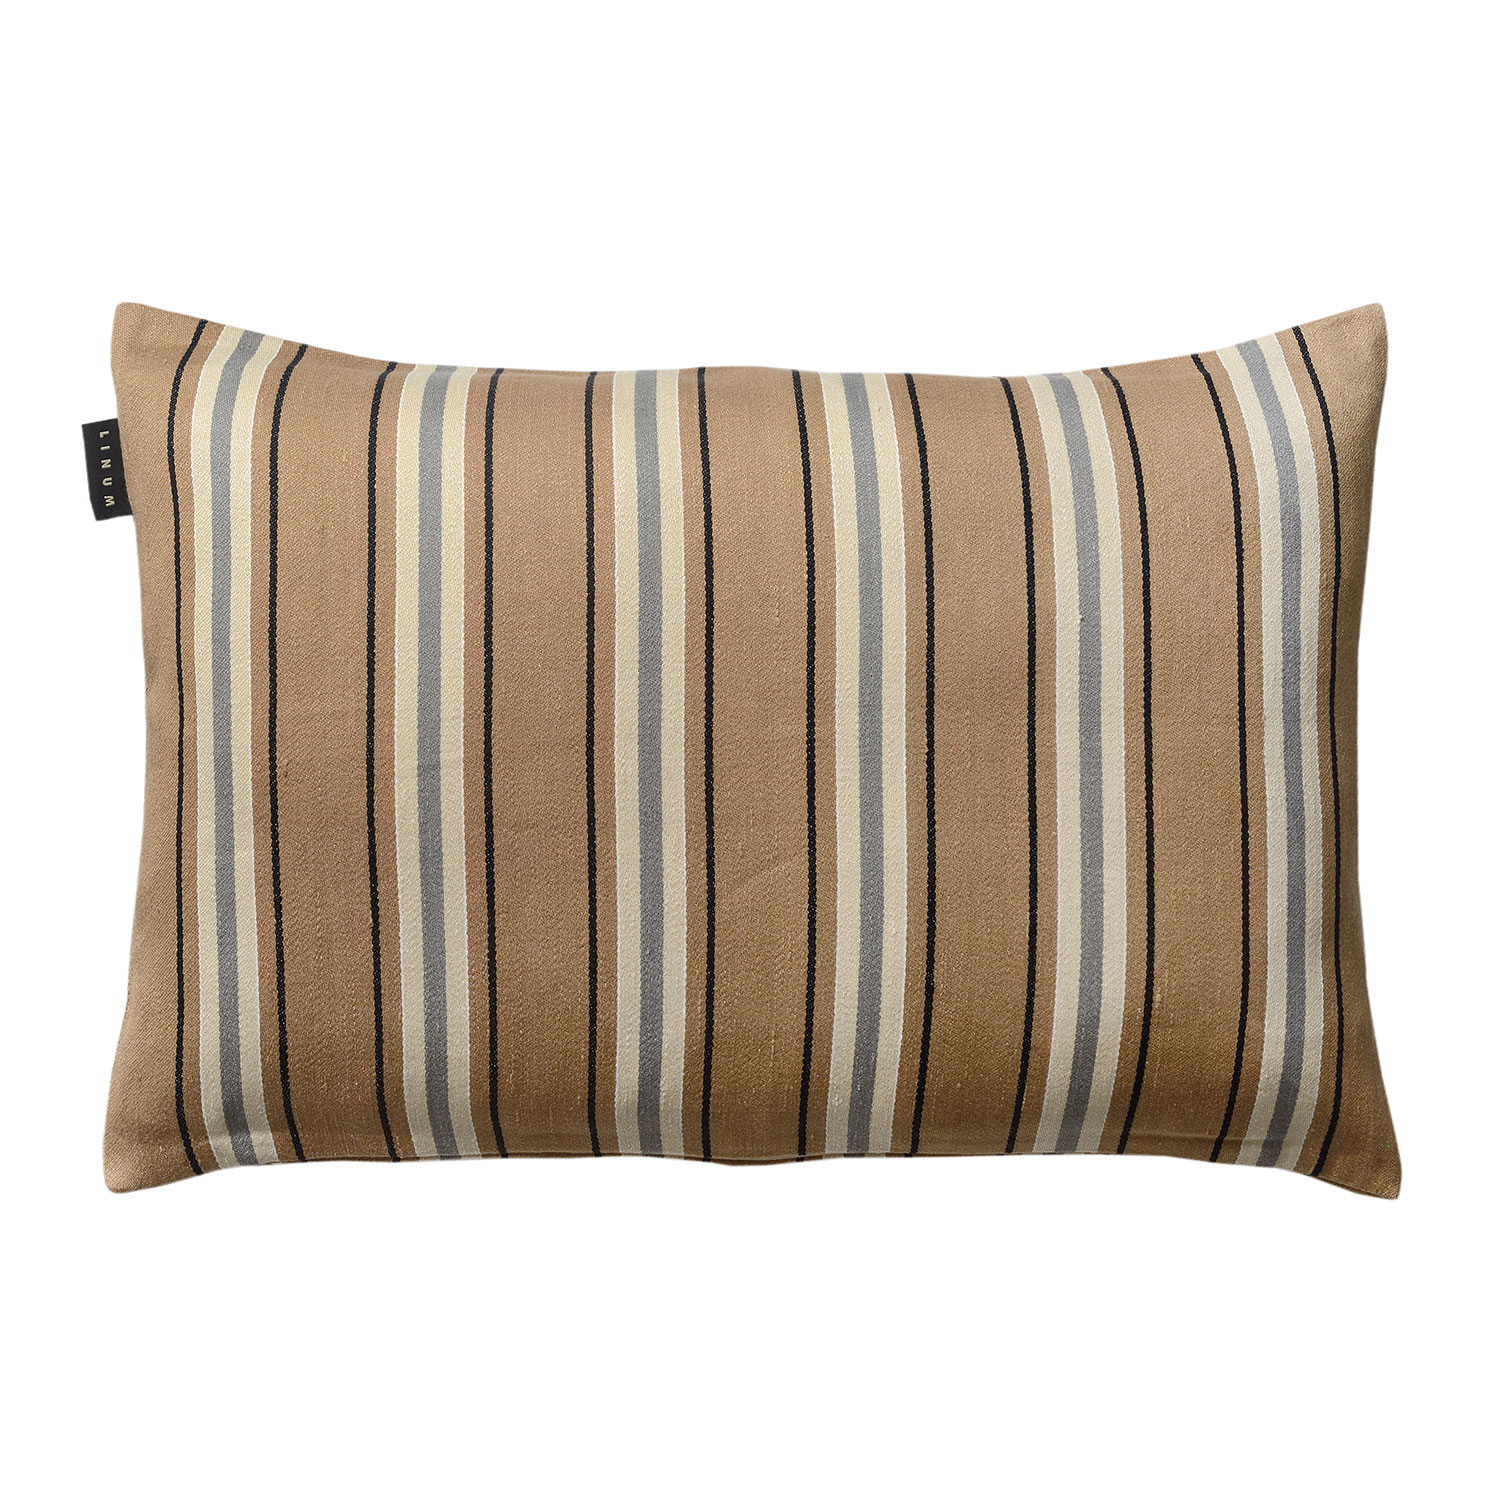 Lucca Cushion Cover 40x60cm, Camel Brown